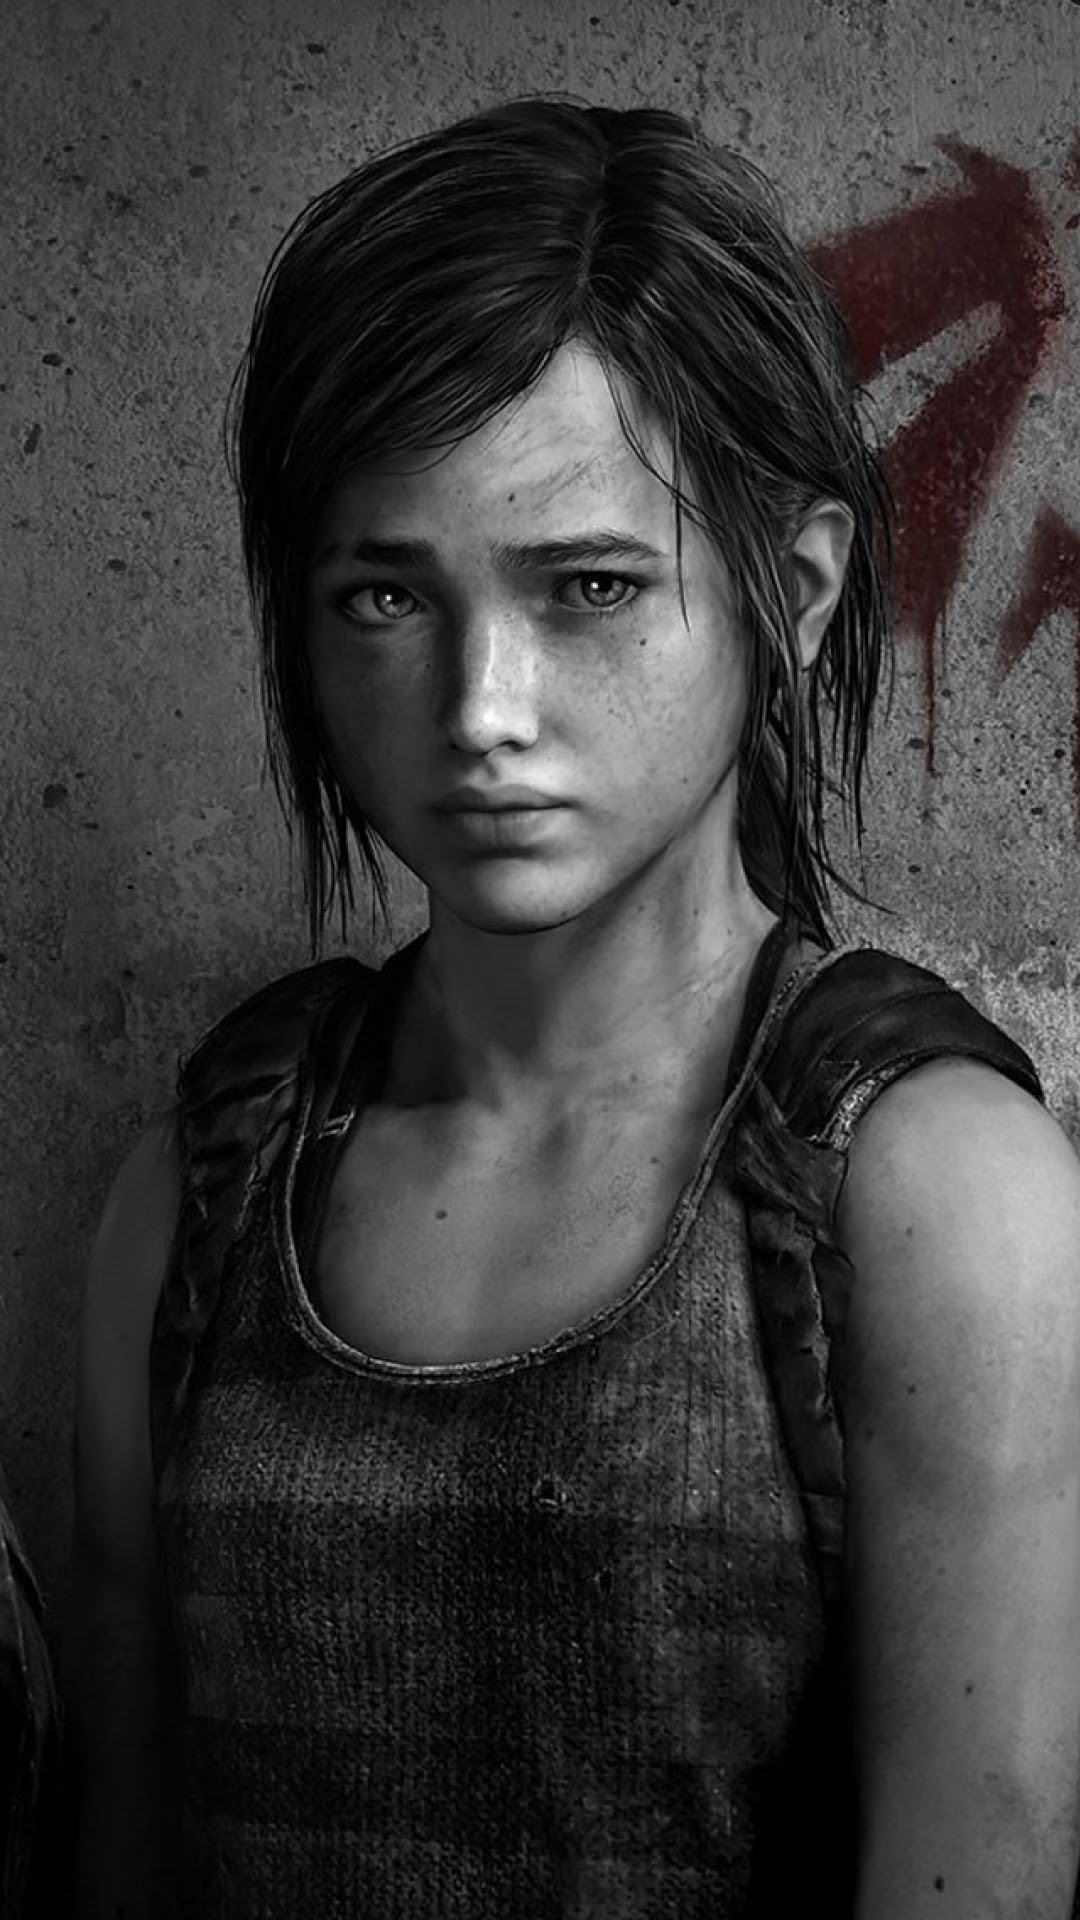 Galaxy Note Hd Wallpapers The Last Of Us Left Behind